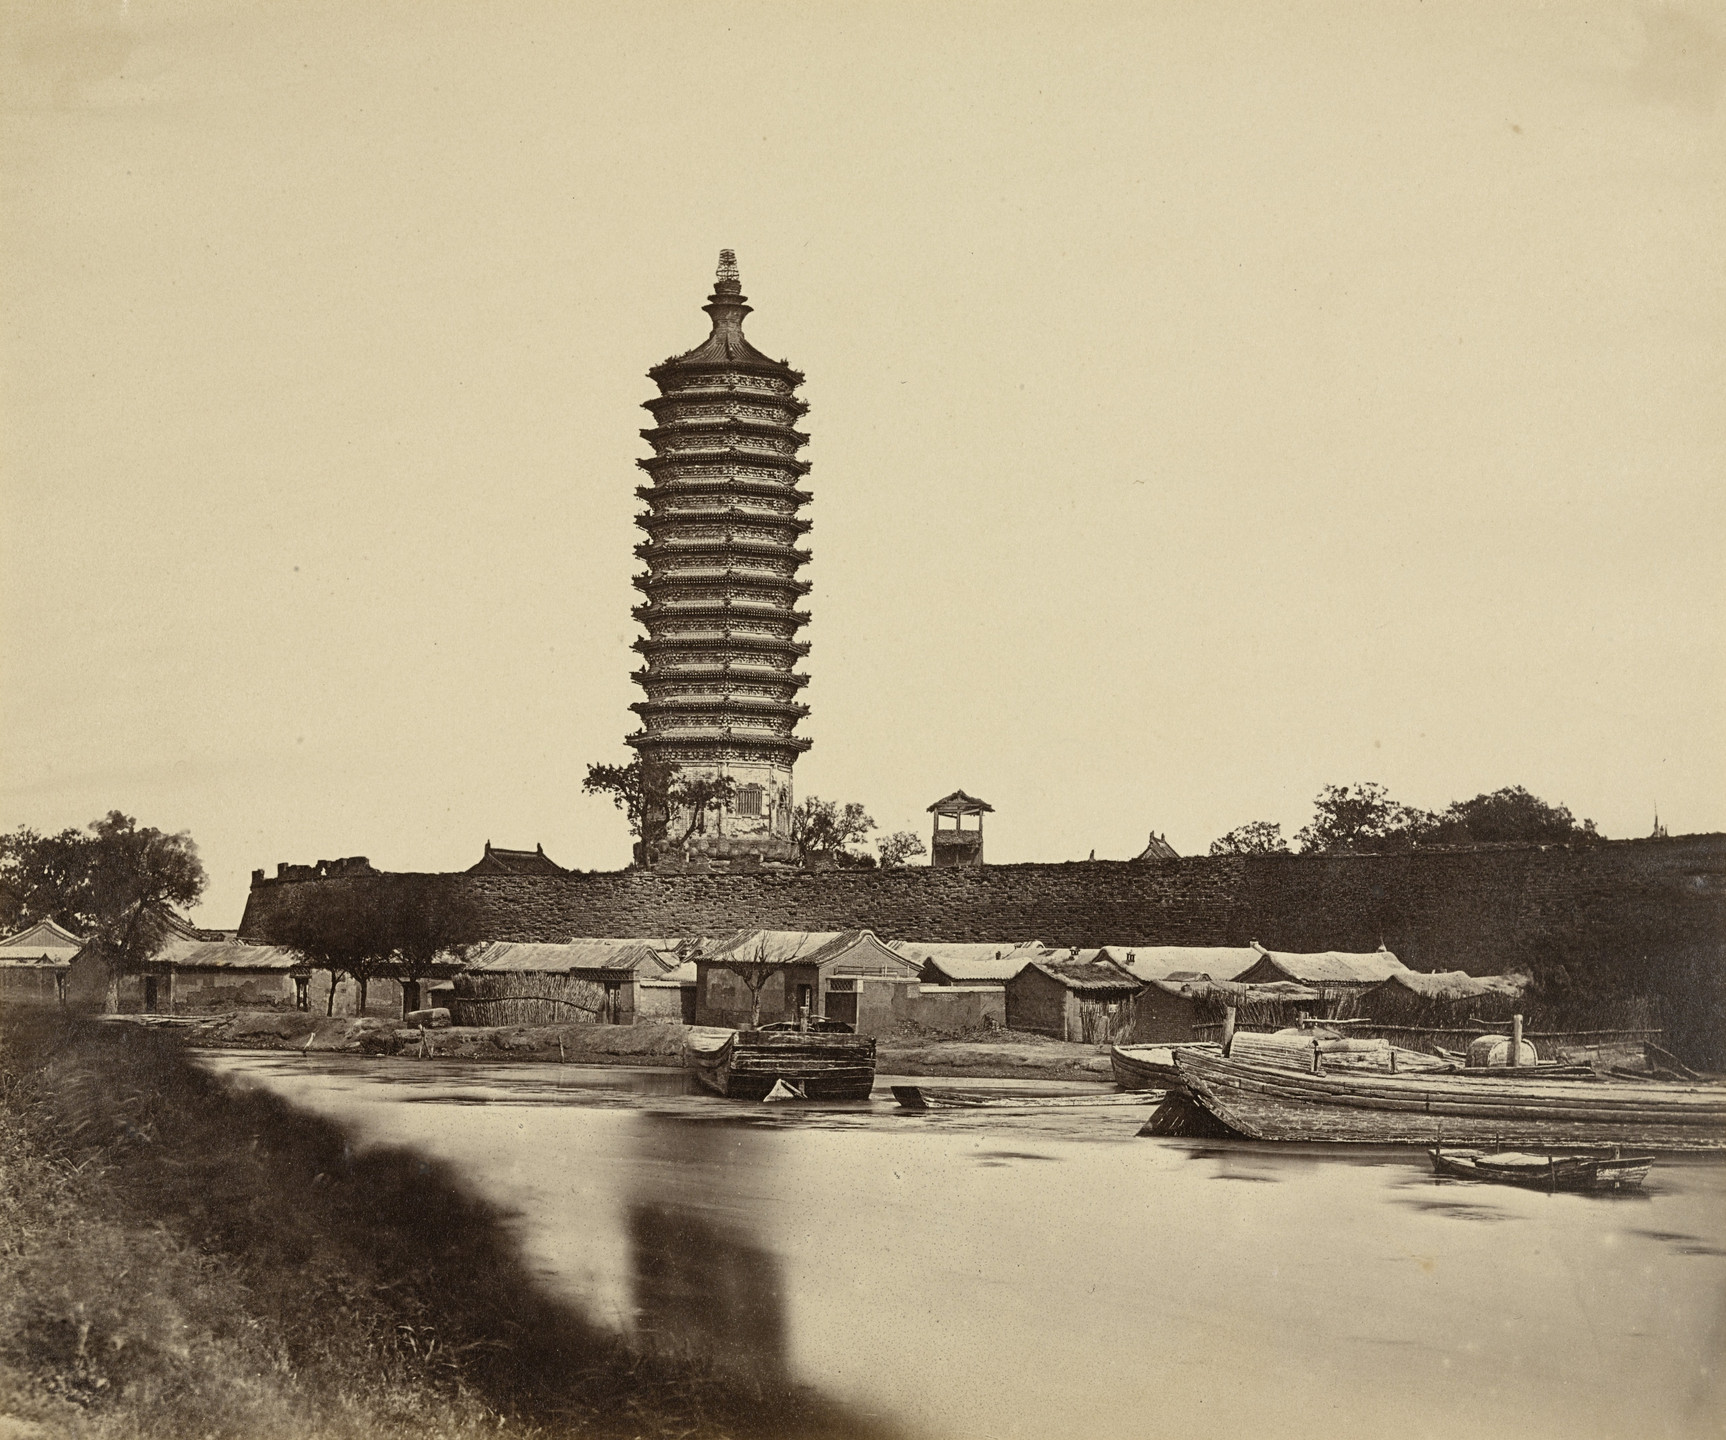 Felice Beato. Tung Chow Pagoda. September 23, 1860